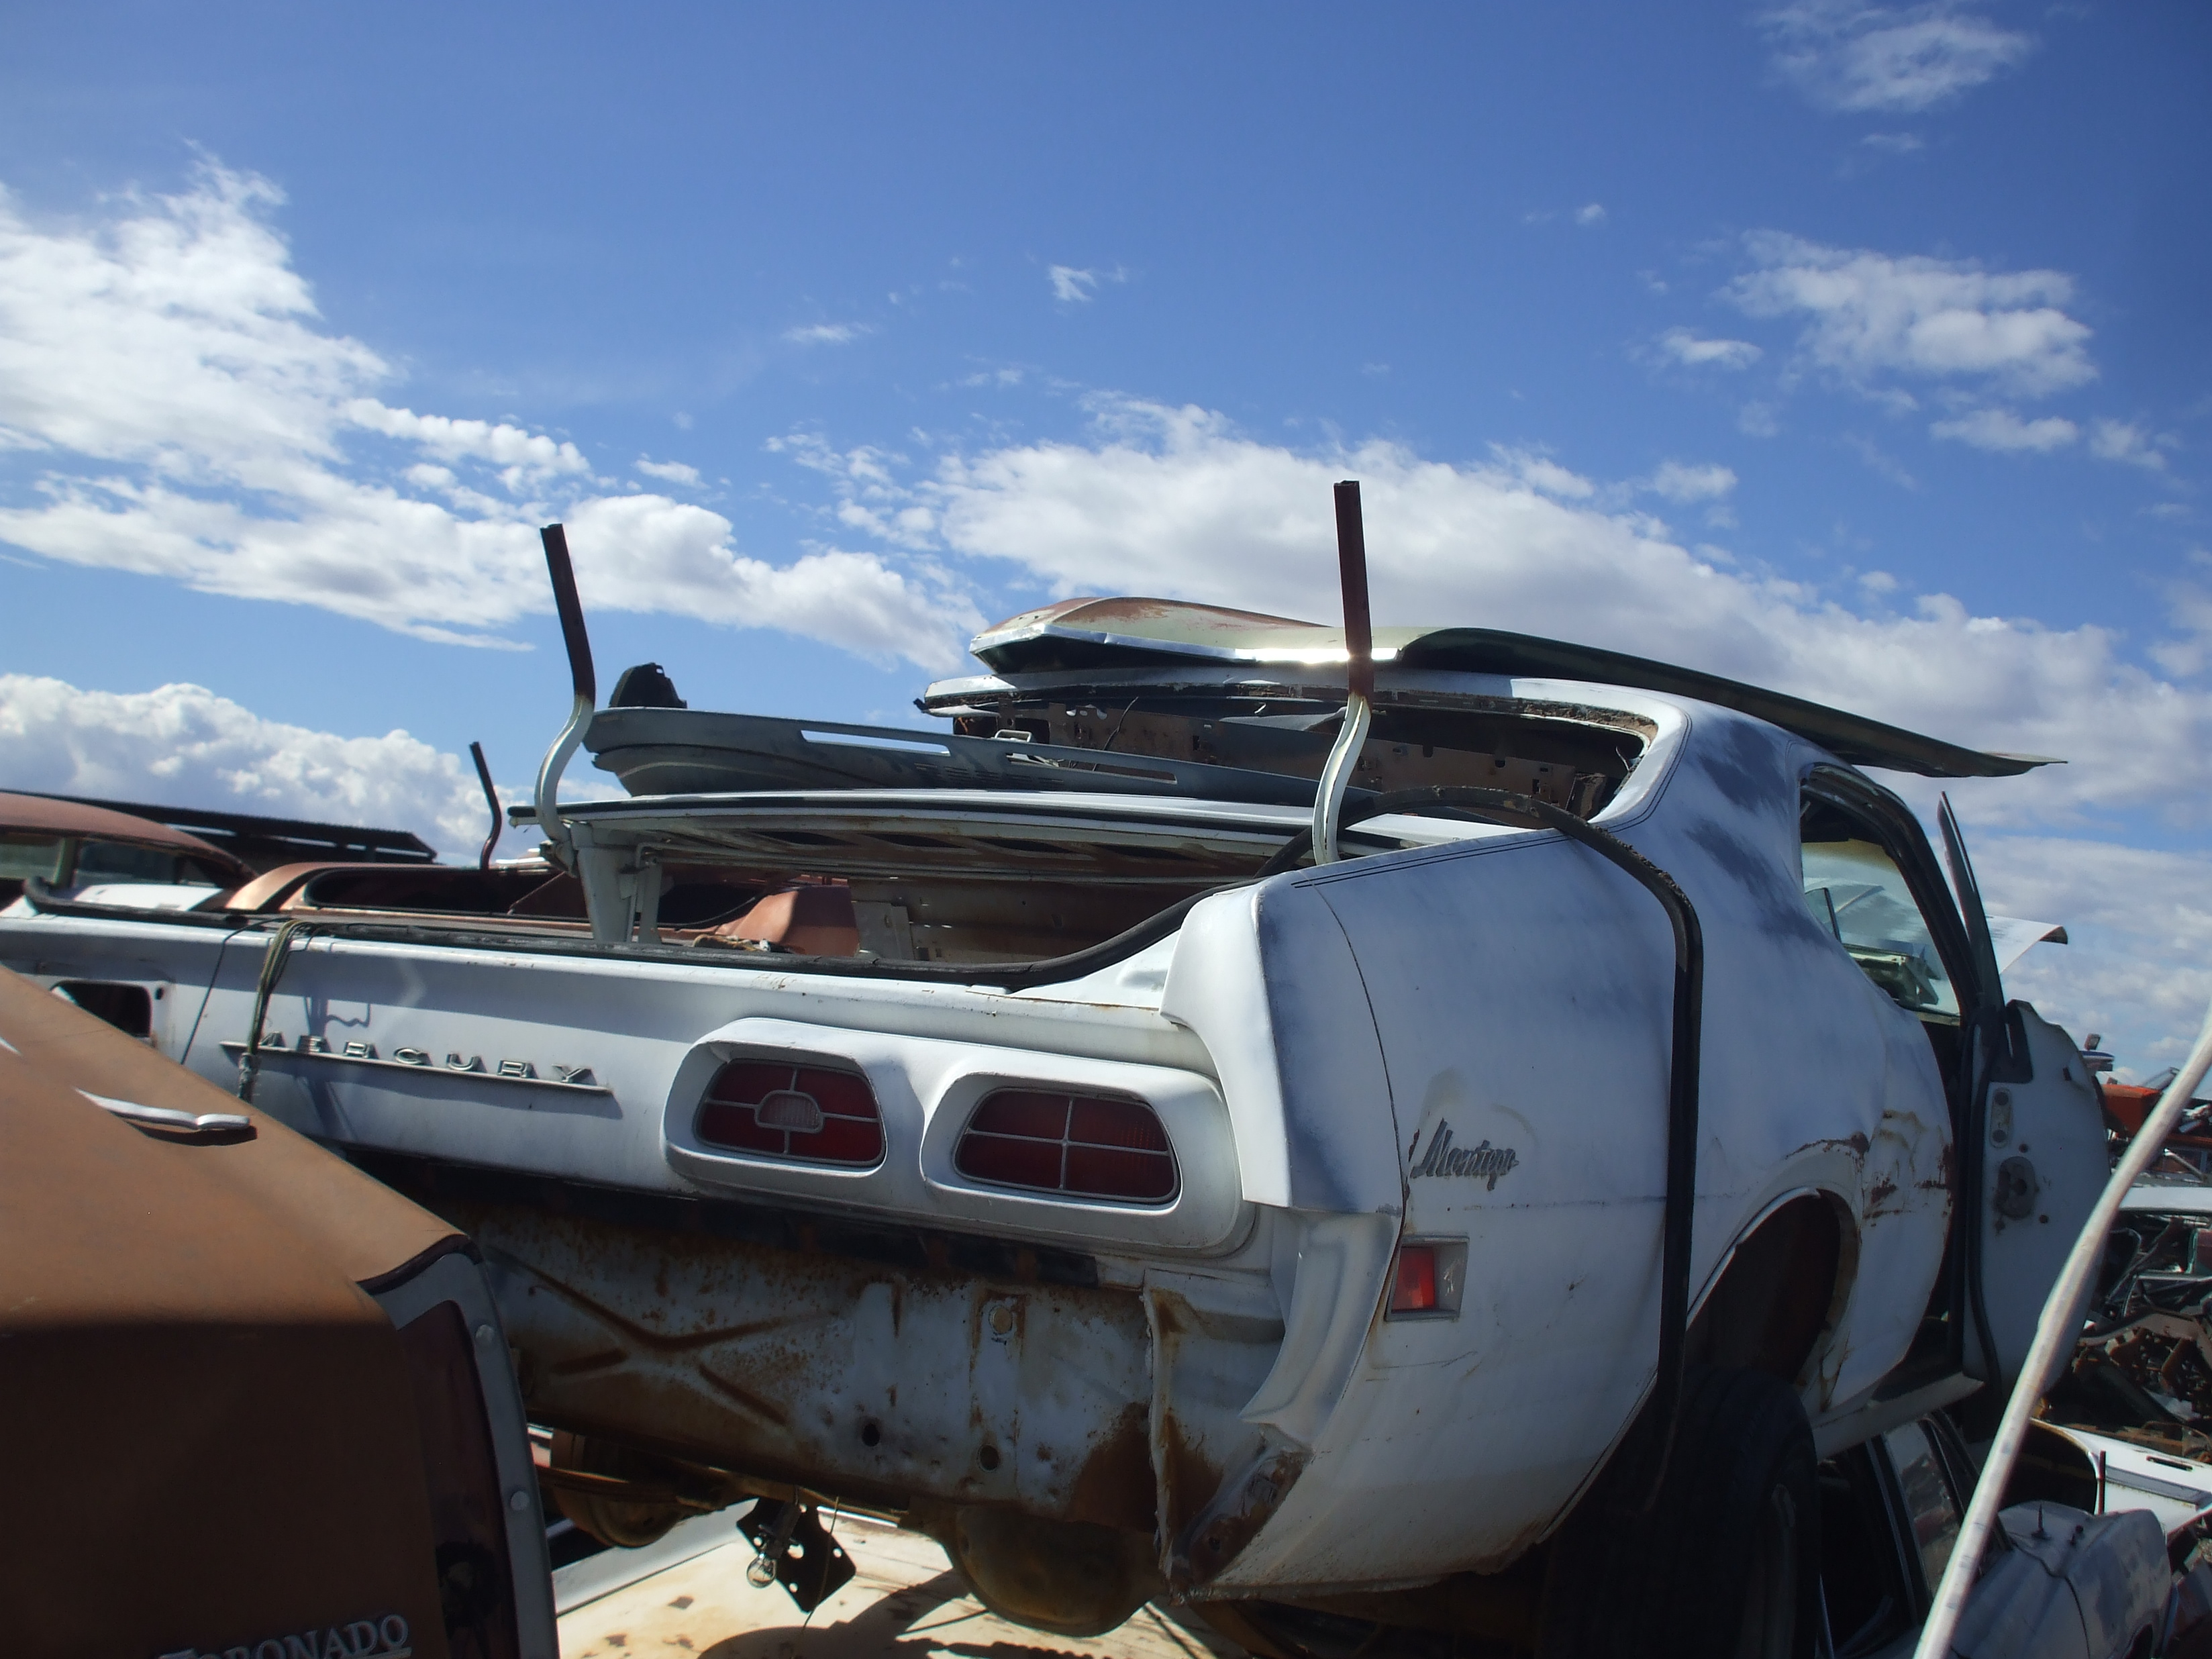 1970 Mercury Montego 70me8813d Desert Valley Auto Parts